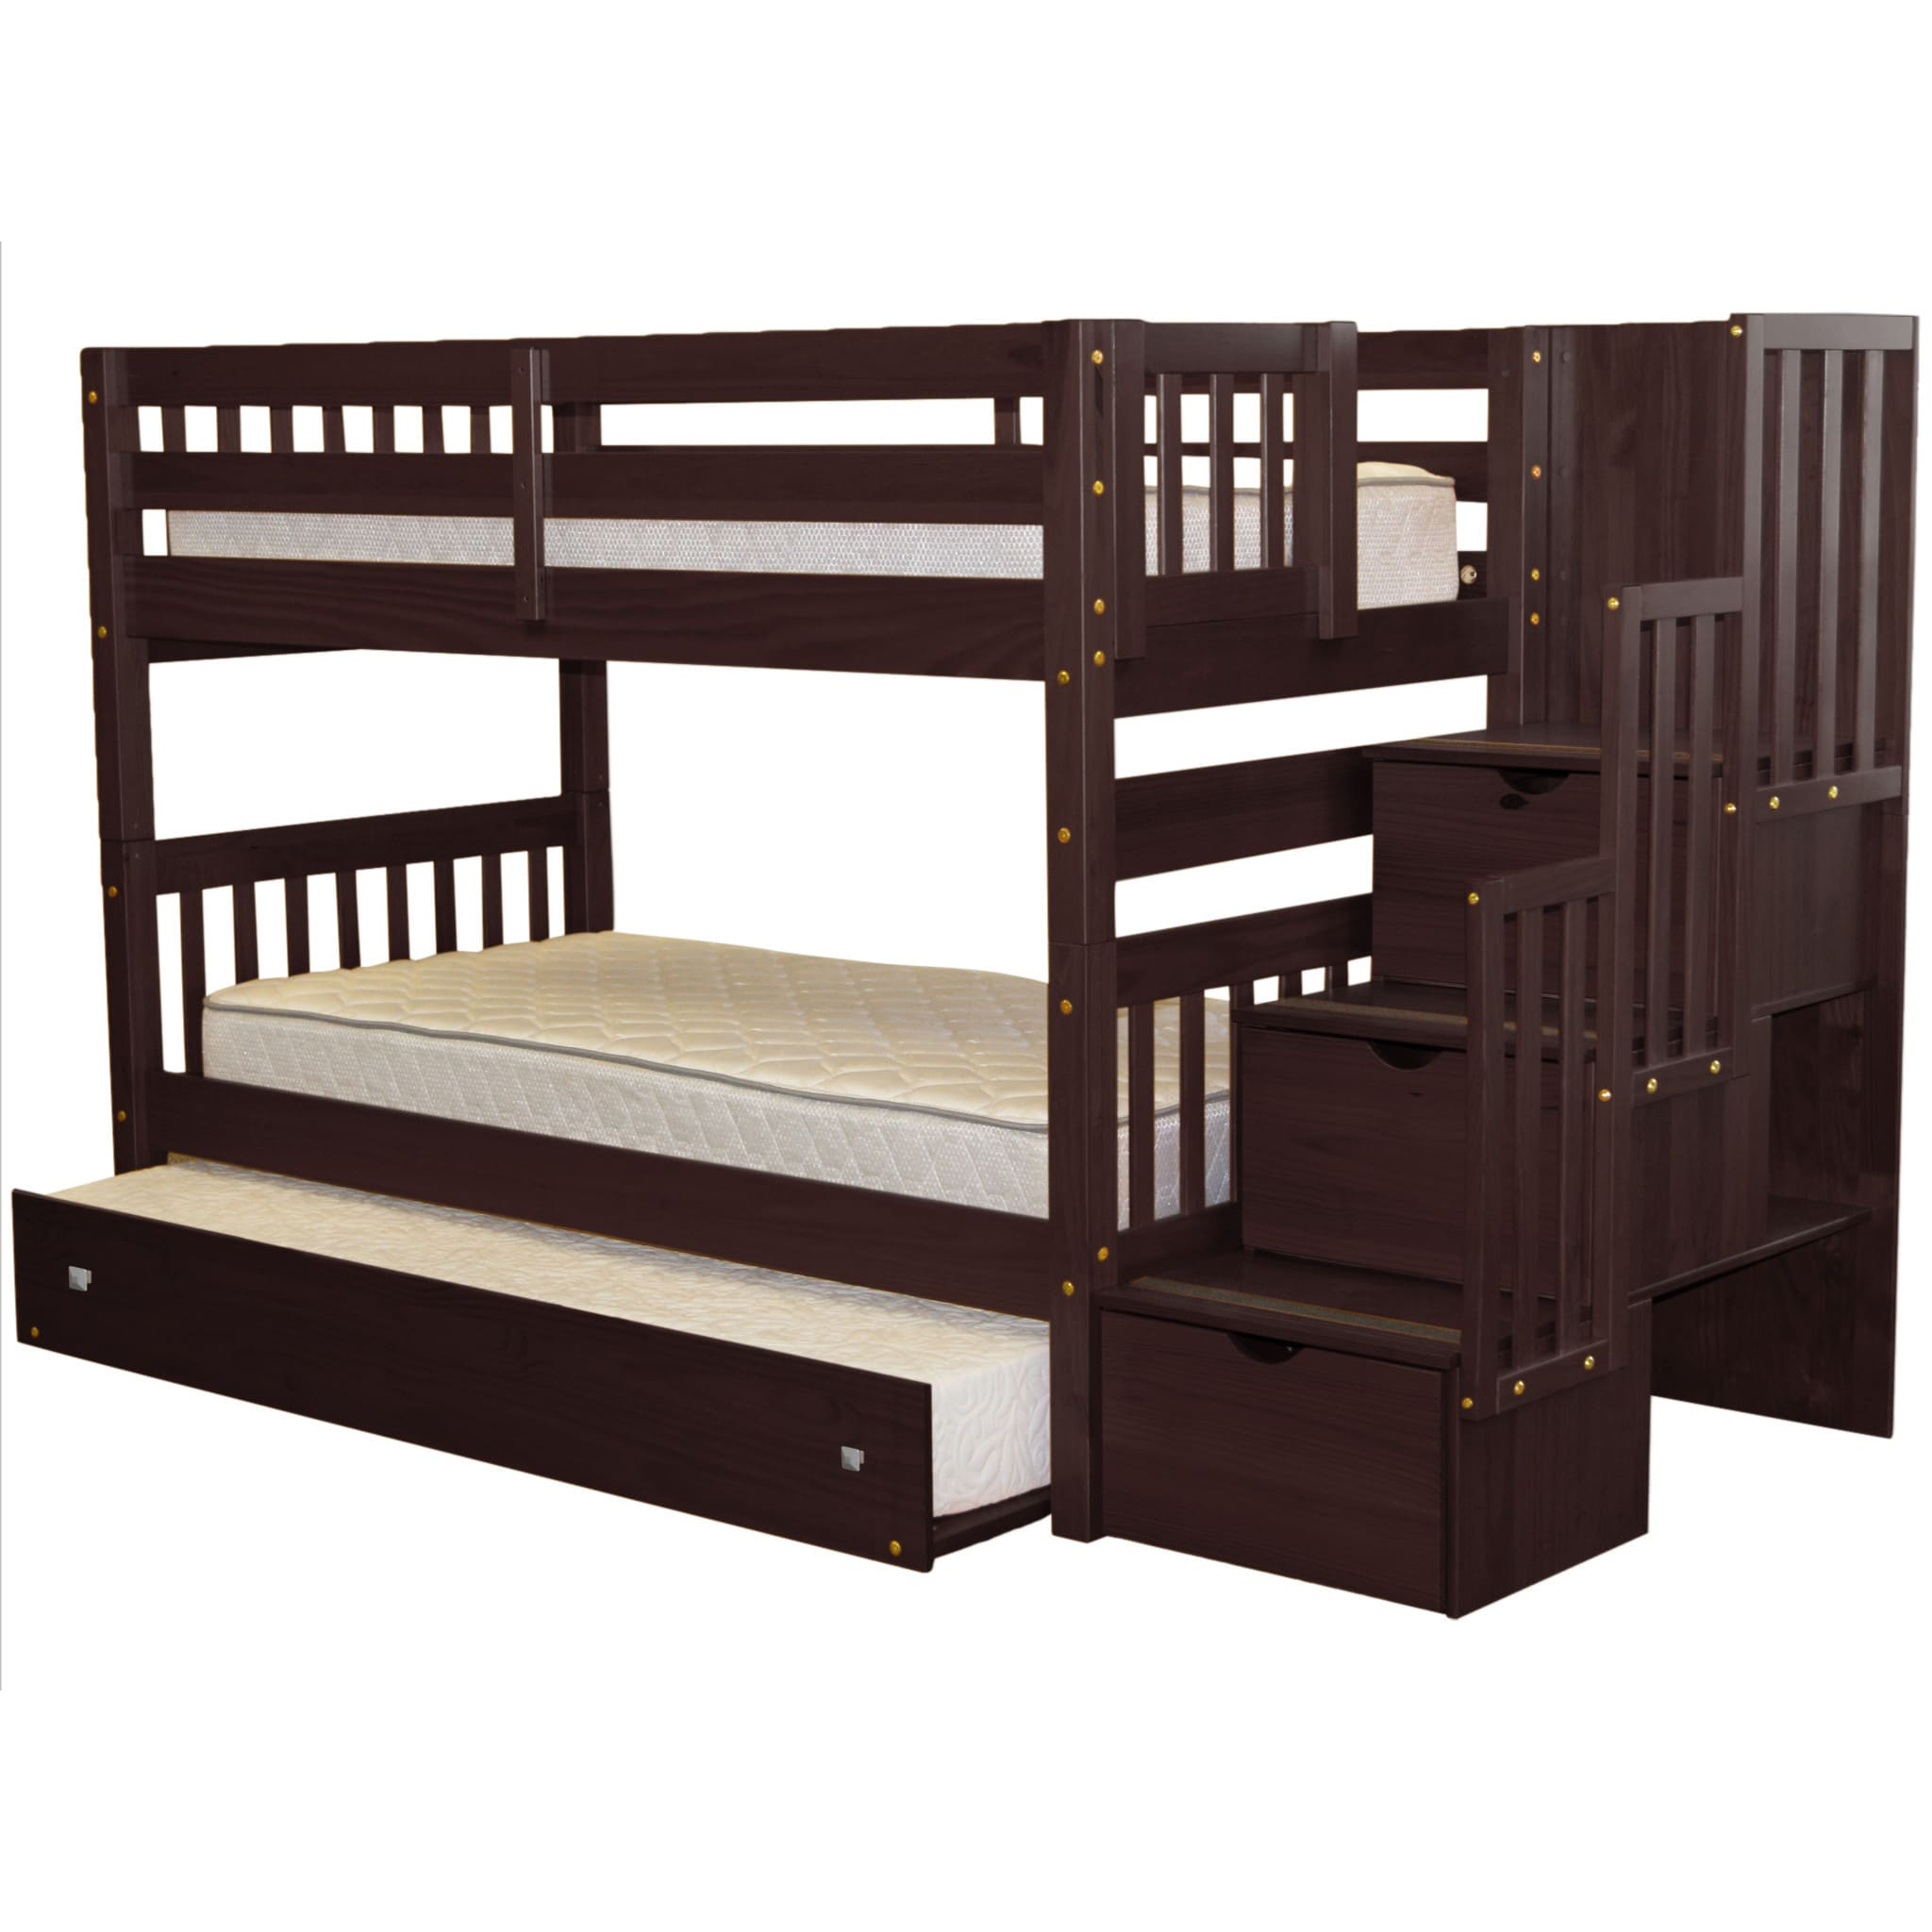 Awesome Bedz King Stairway Bunk Bed Twin Over Twin And Twin Trundle In Cappuccino